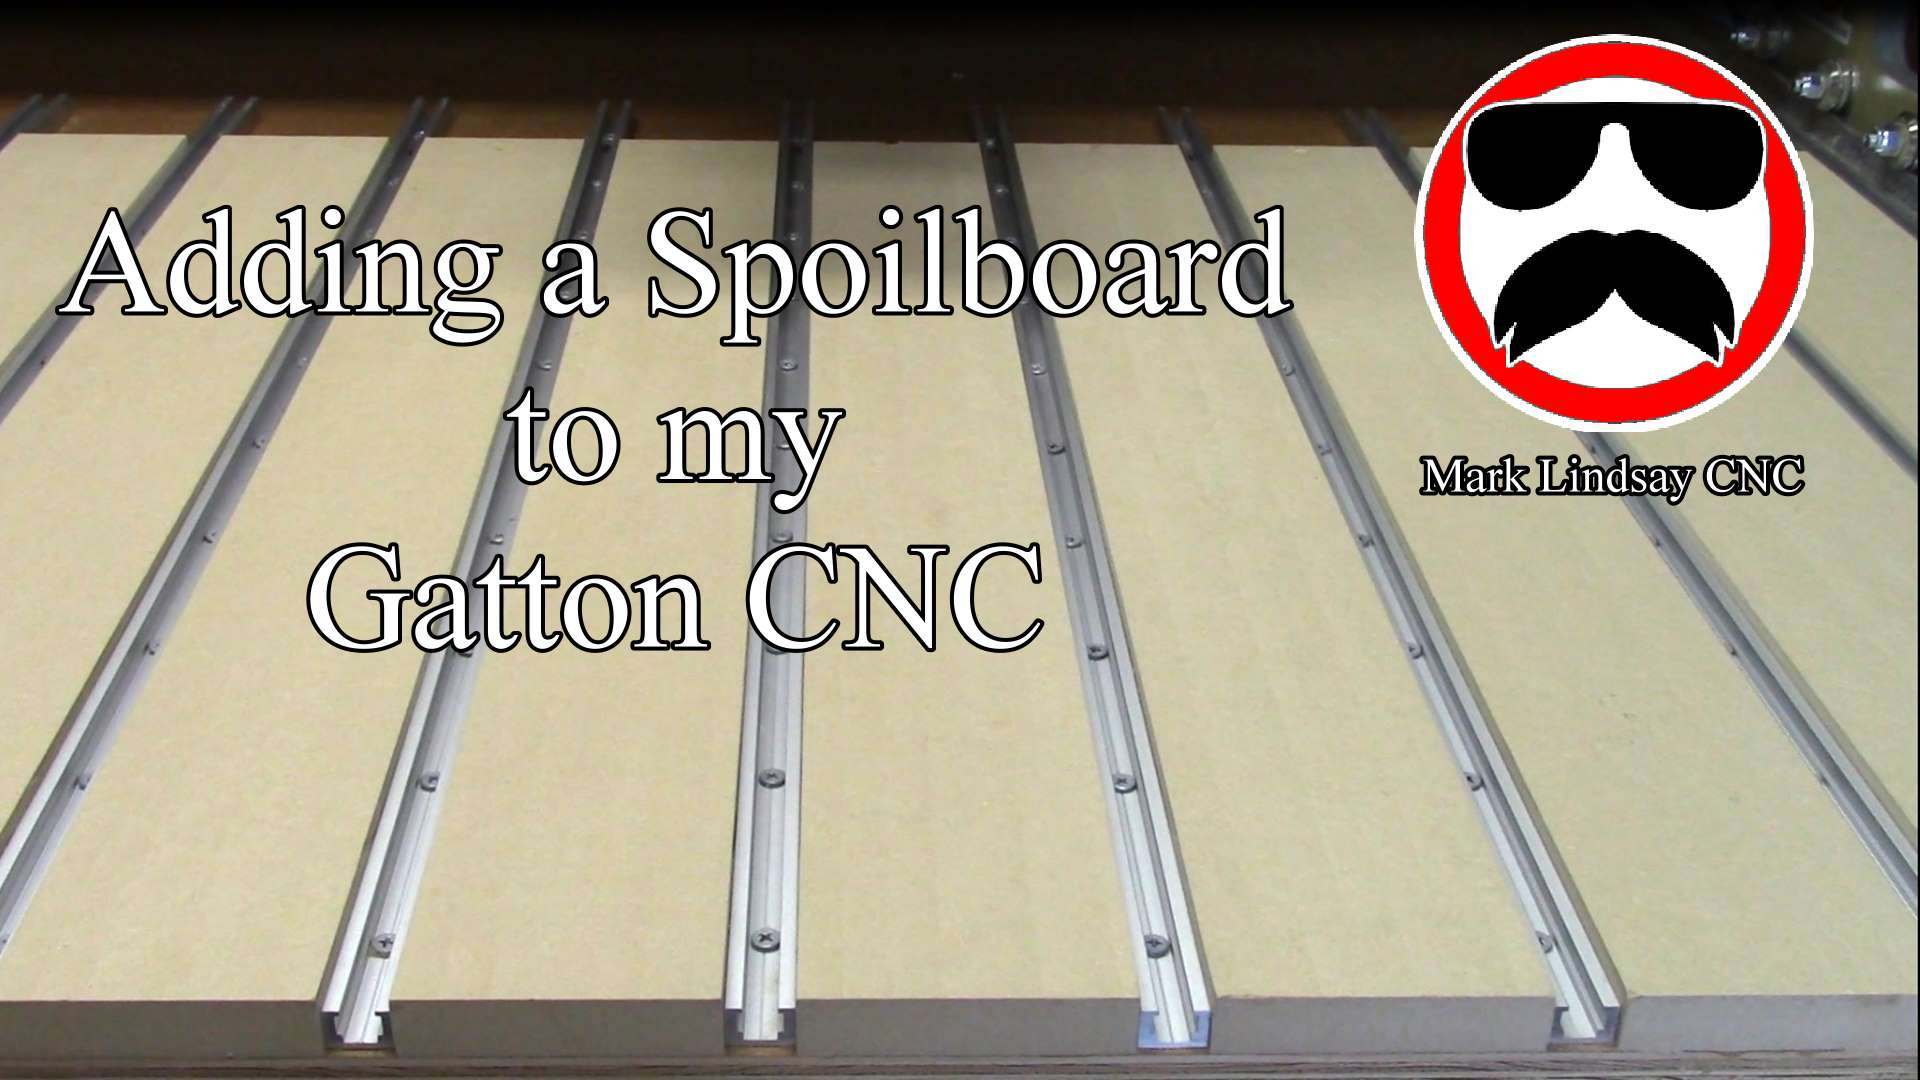 Adding a Spoilboard to my Gatton CNC